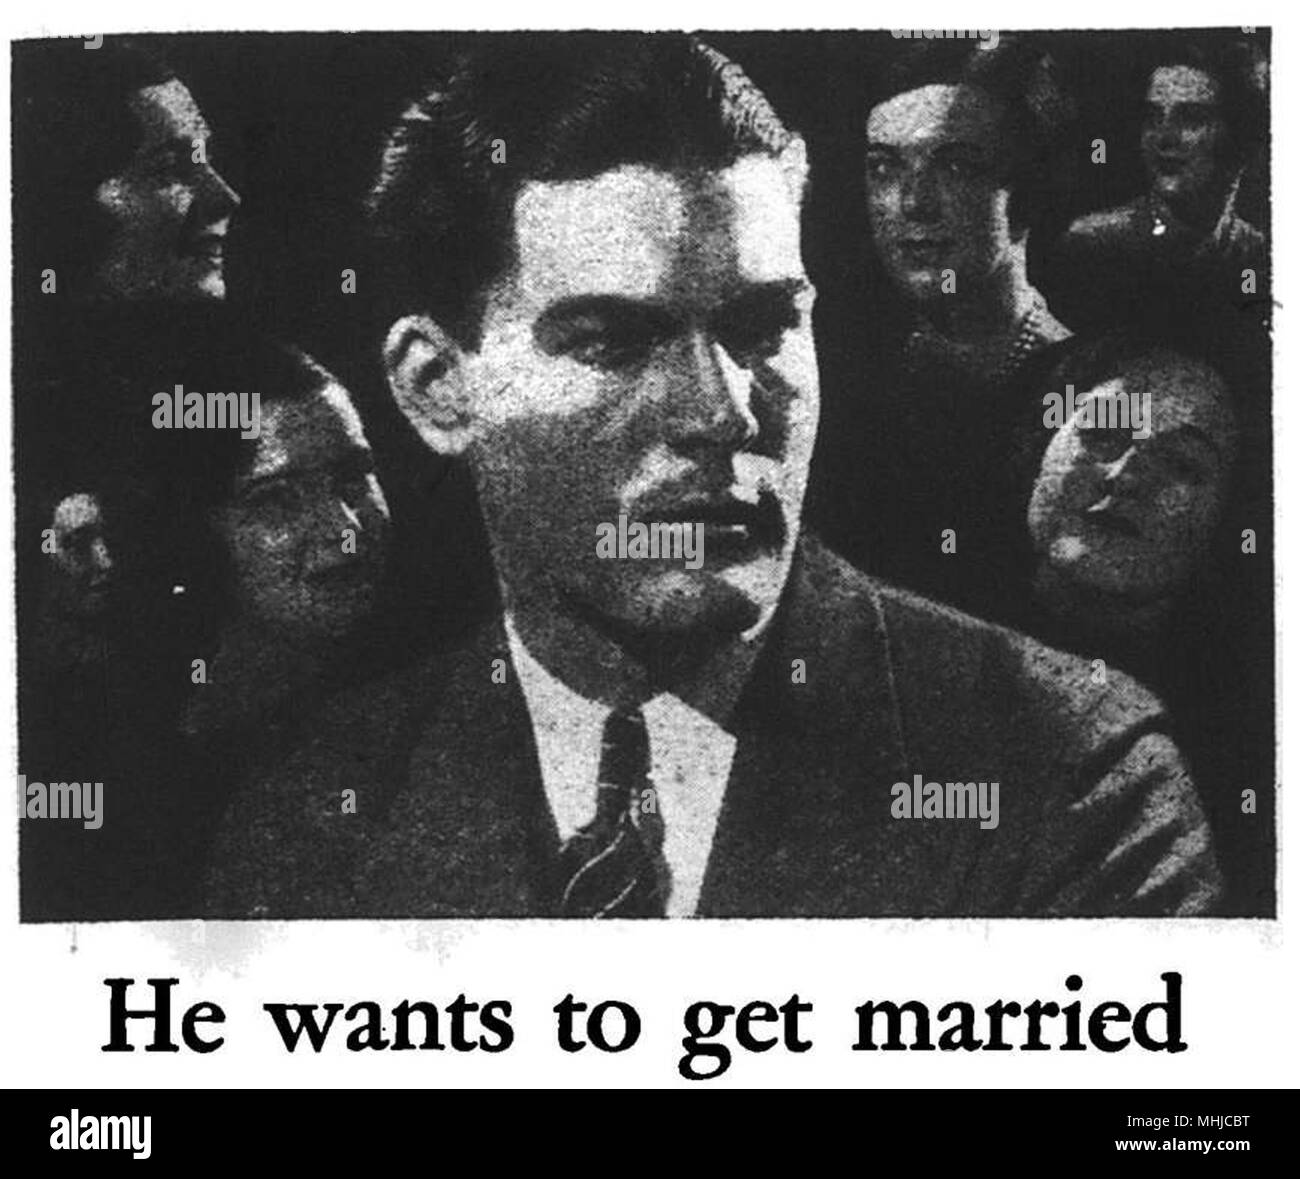 headshot of a man illustration 'he wants to get married' - Stock Image